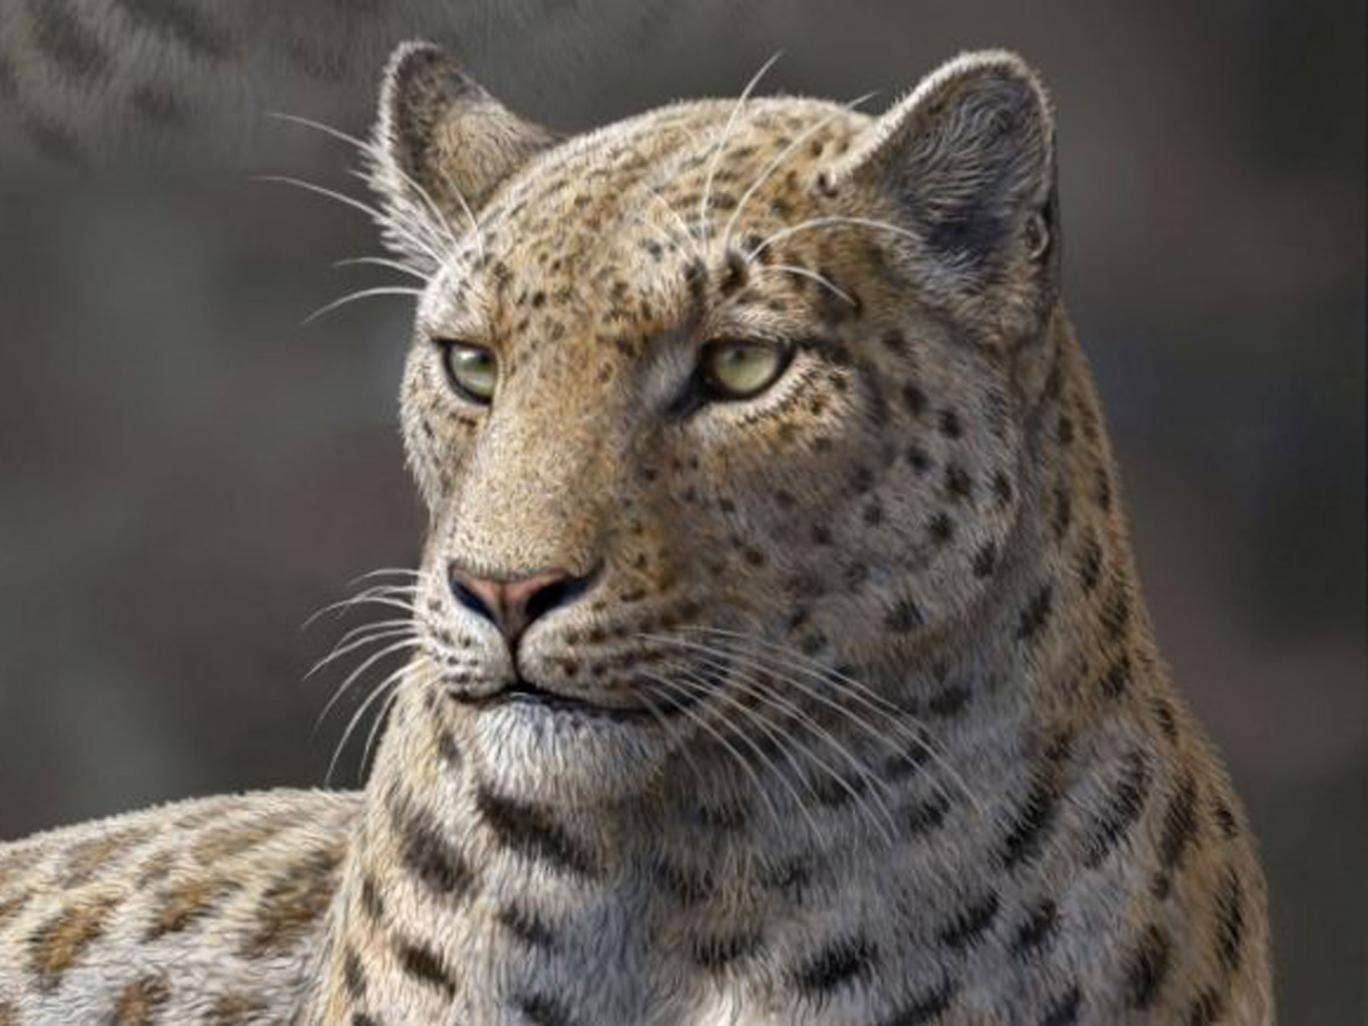 This artist rendering shows a reconstruction of extinct big cat, Panthera blytheae, based on skull CT scan data